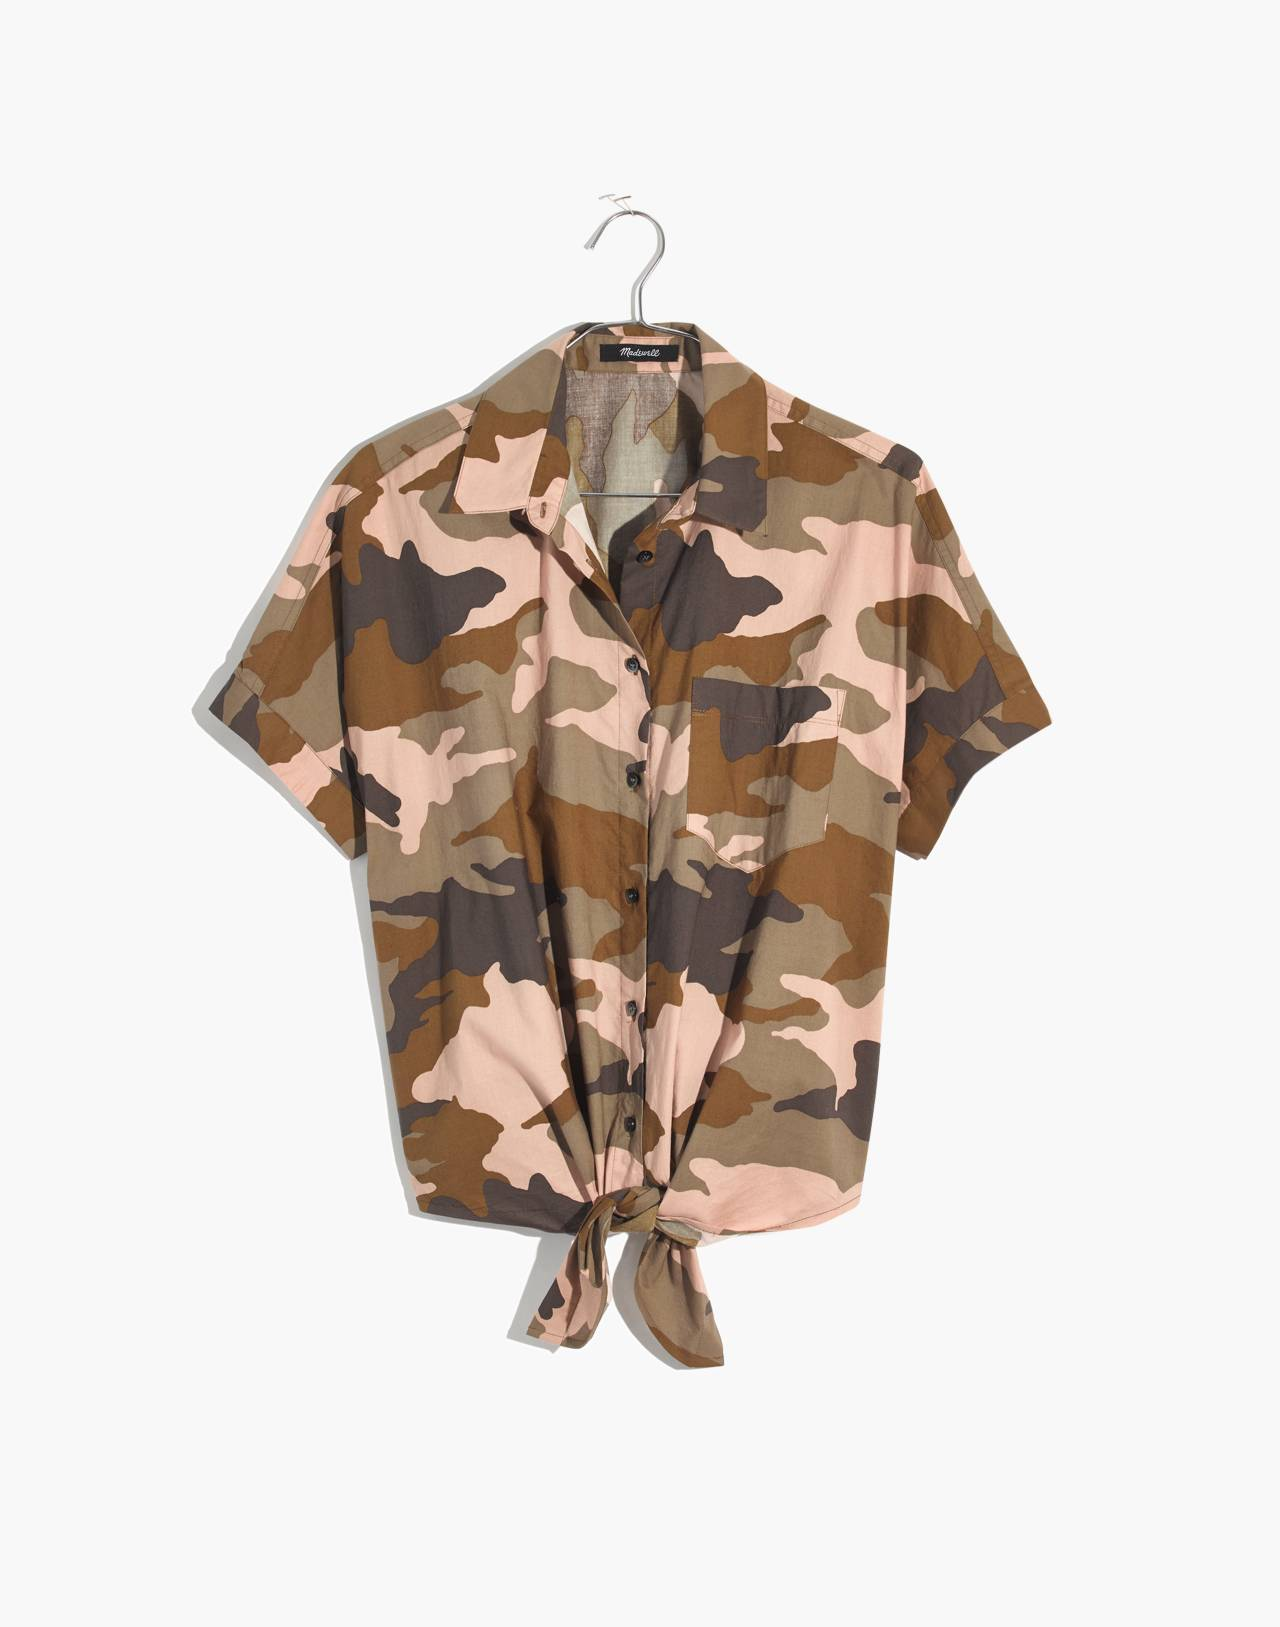 Short-Sleeve Tie-Front Shirt in Cottontail Camo in bunny camo asparagus image 4